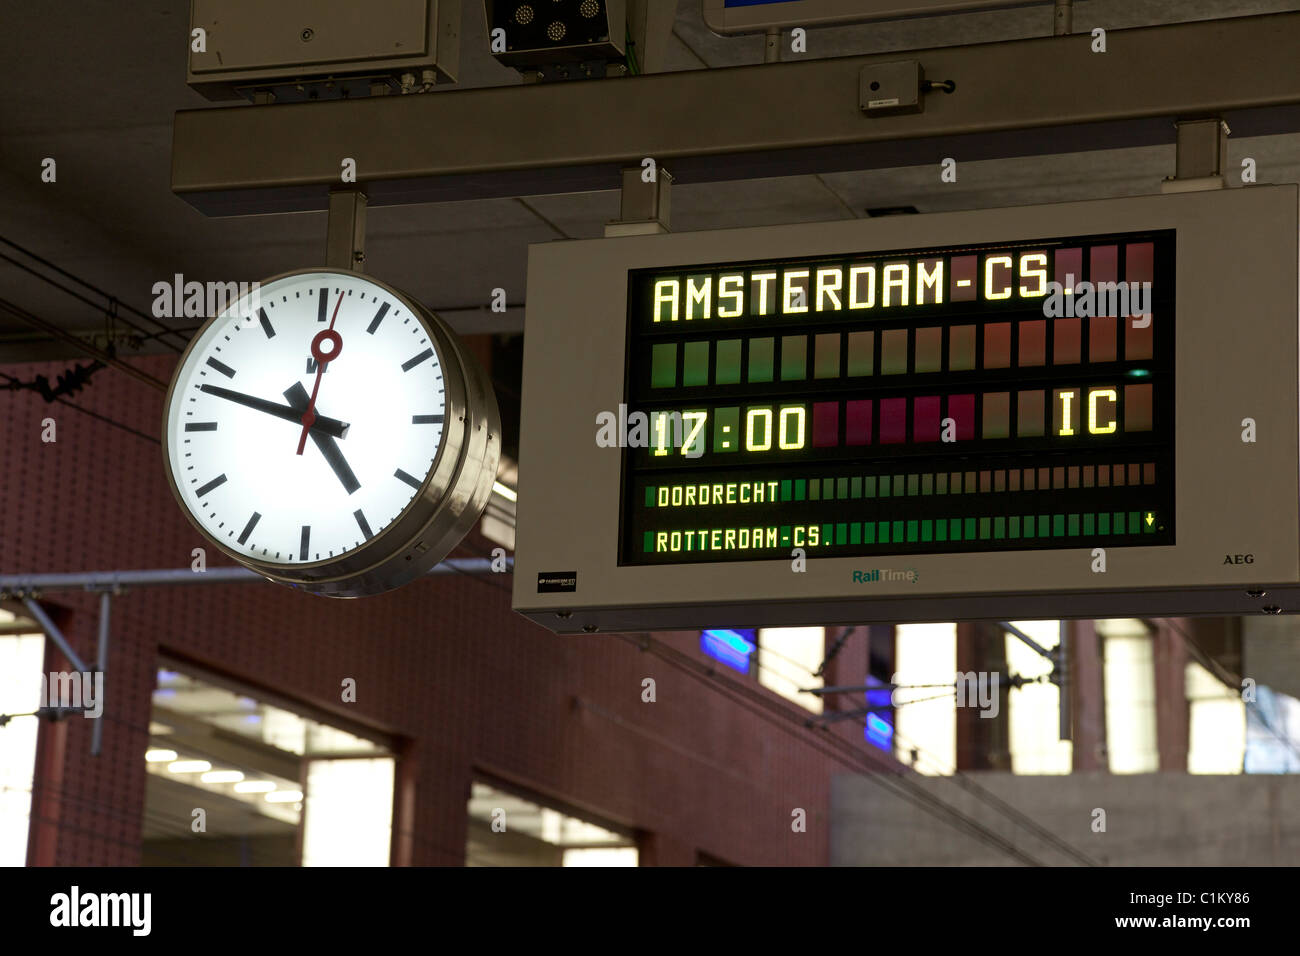 Station sign to Amsterdam with clock - Stock Image